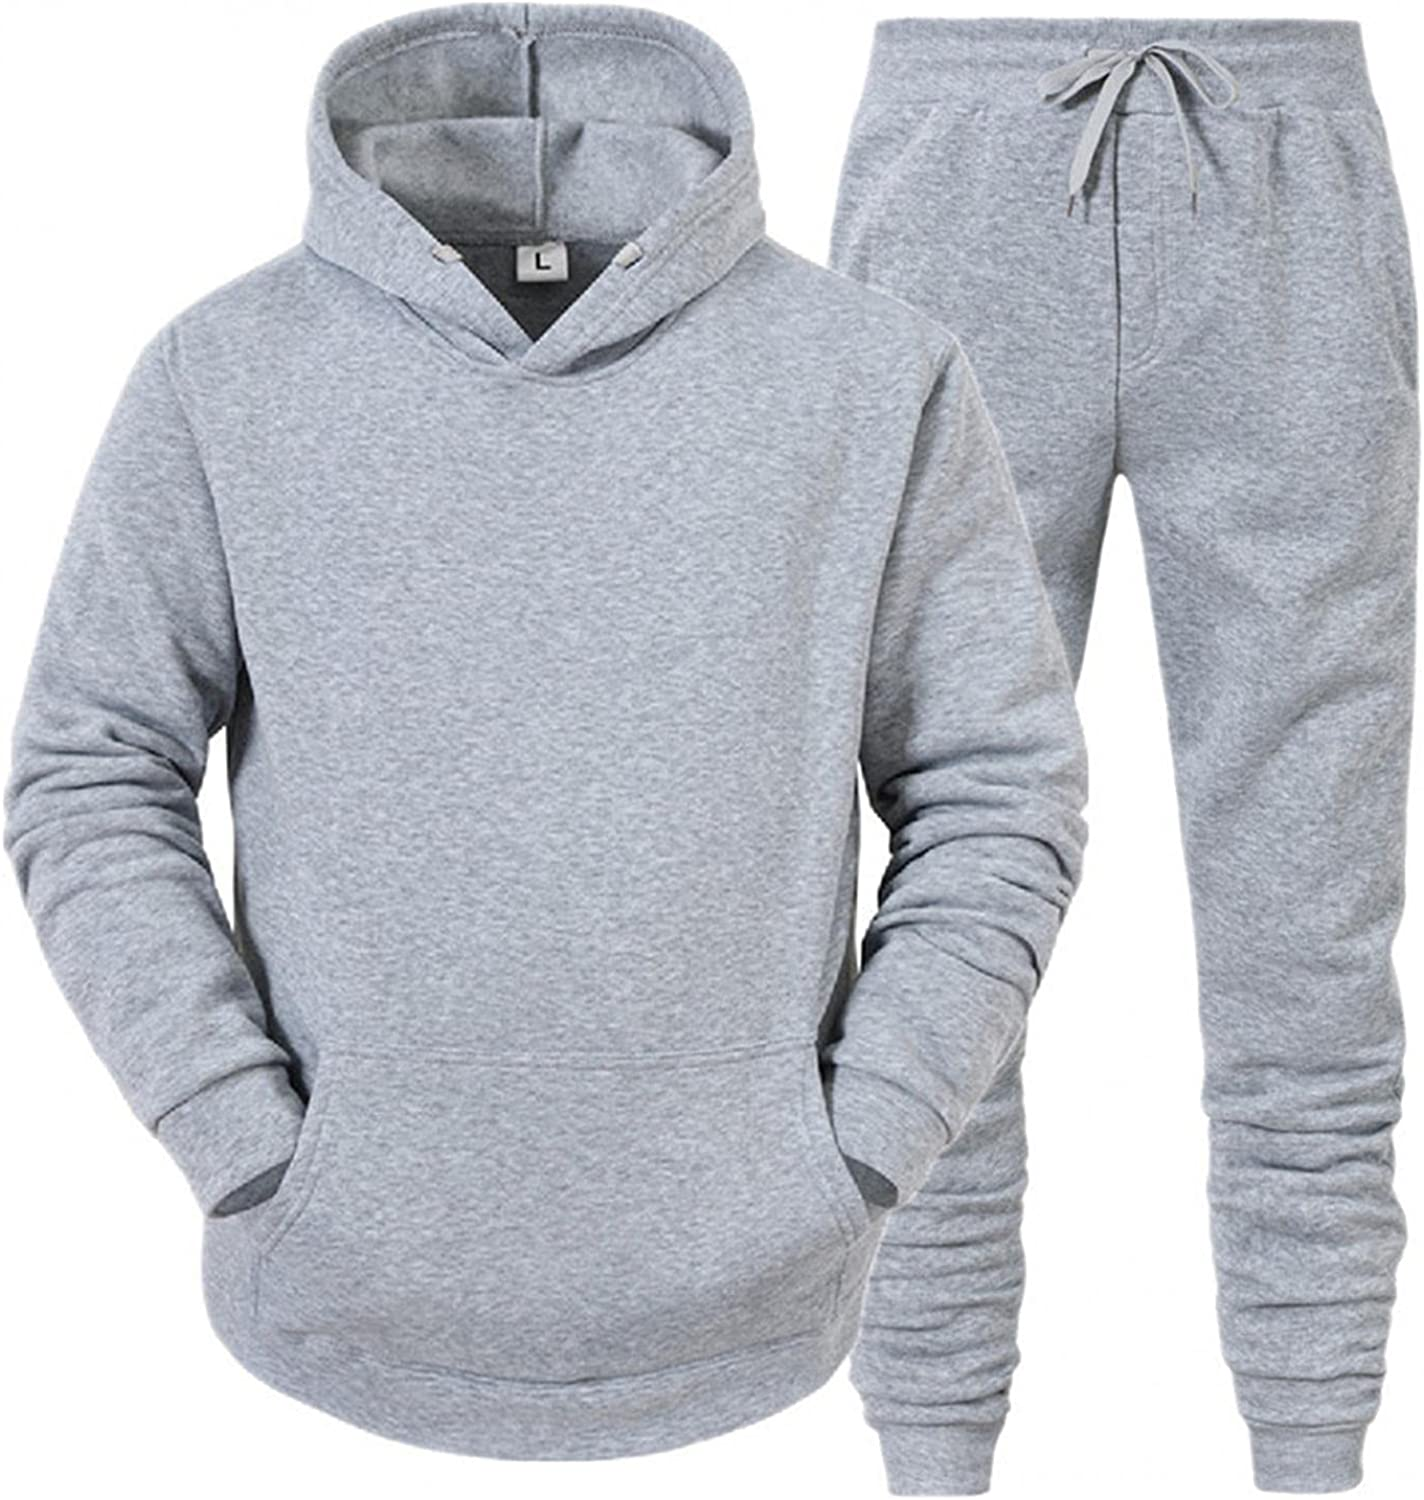 Aayomet Tracksuit Zip up Winter Warm Solid Hoodie Sweatshirt Pants Two Piece Sweatsuits Sports Outfits Suits for Men